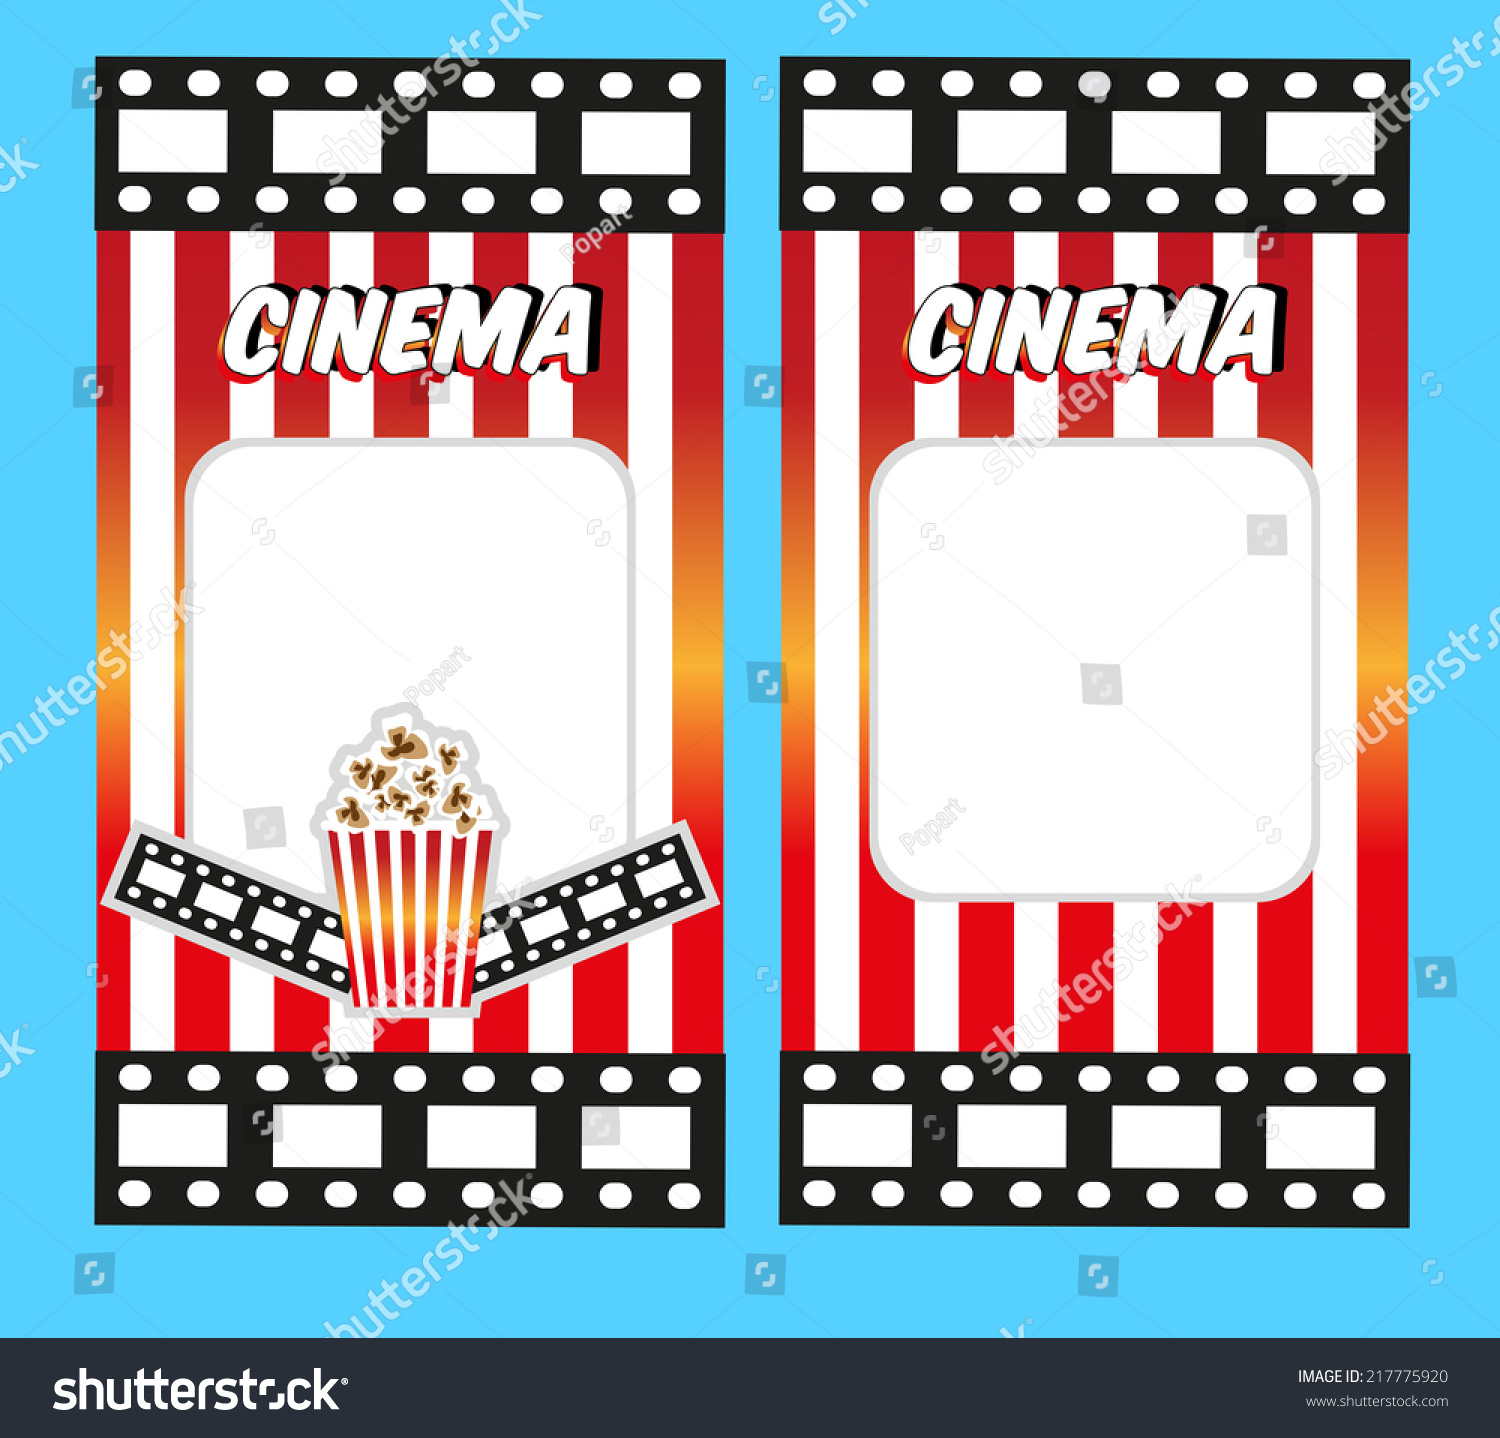 cinema tickets invitation design template stock vector 217775920 shutterstock. Black Bedroom Furniture Sets. Home Design Ideas